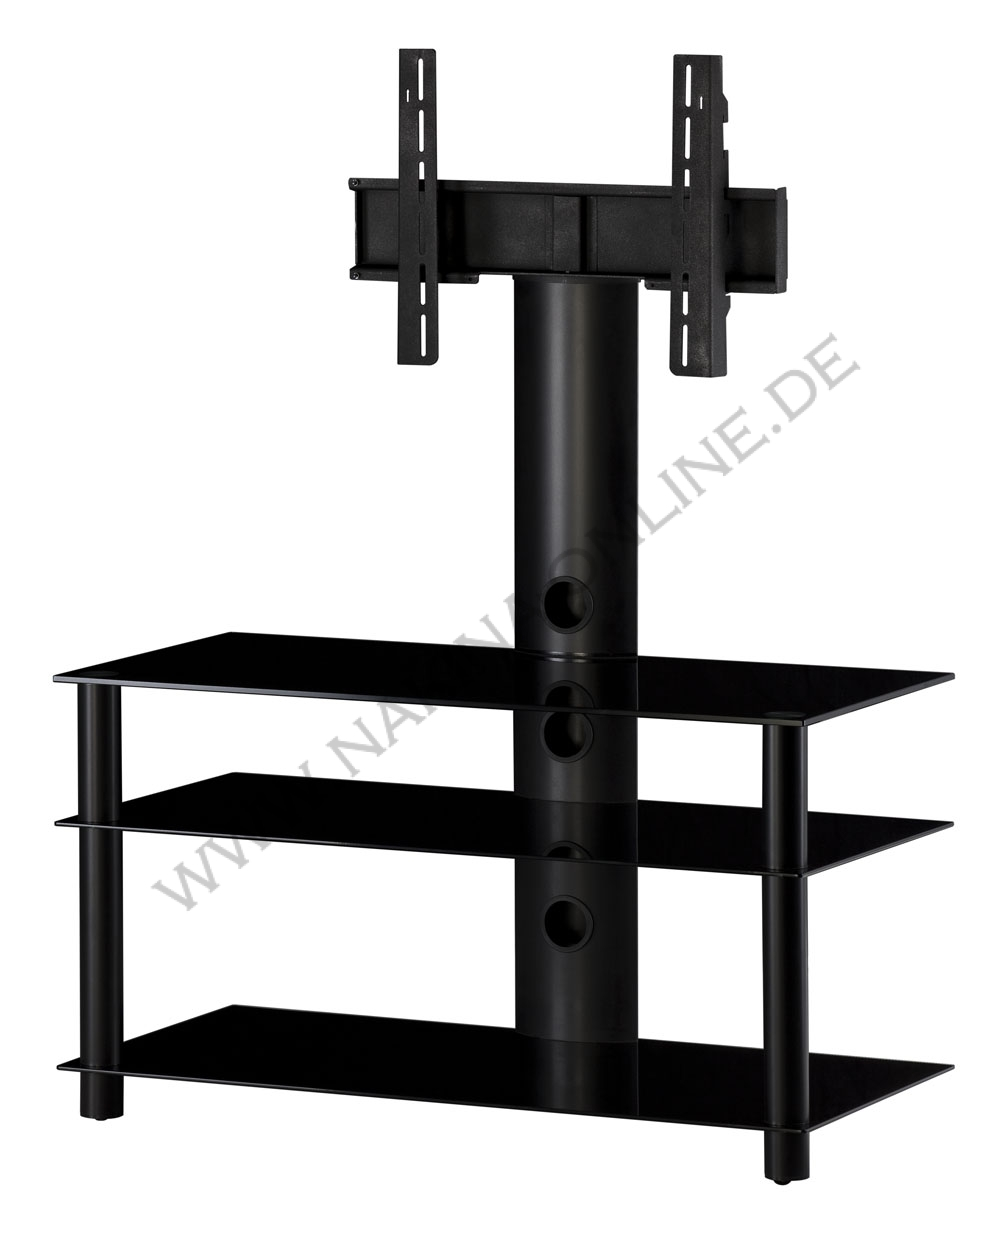 sonorous tv moebel neo953 b hblk neo 953 b hblk 12. Black Bedroom Furniture Sets. Home Design Ideas